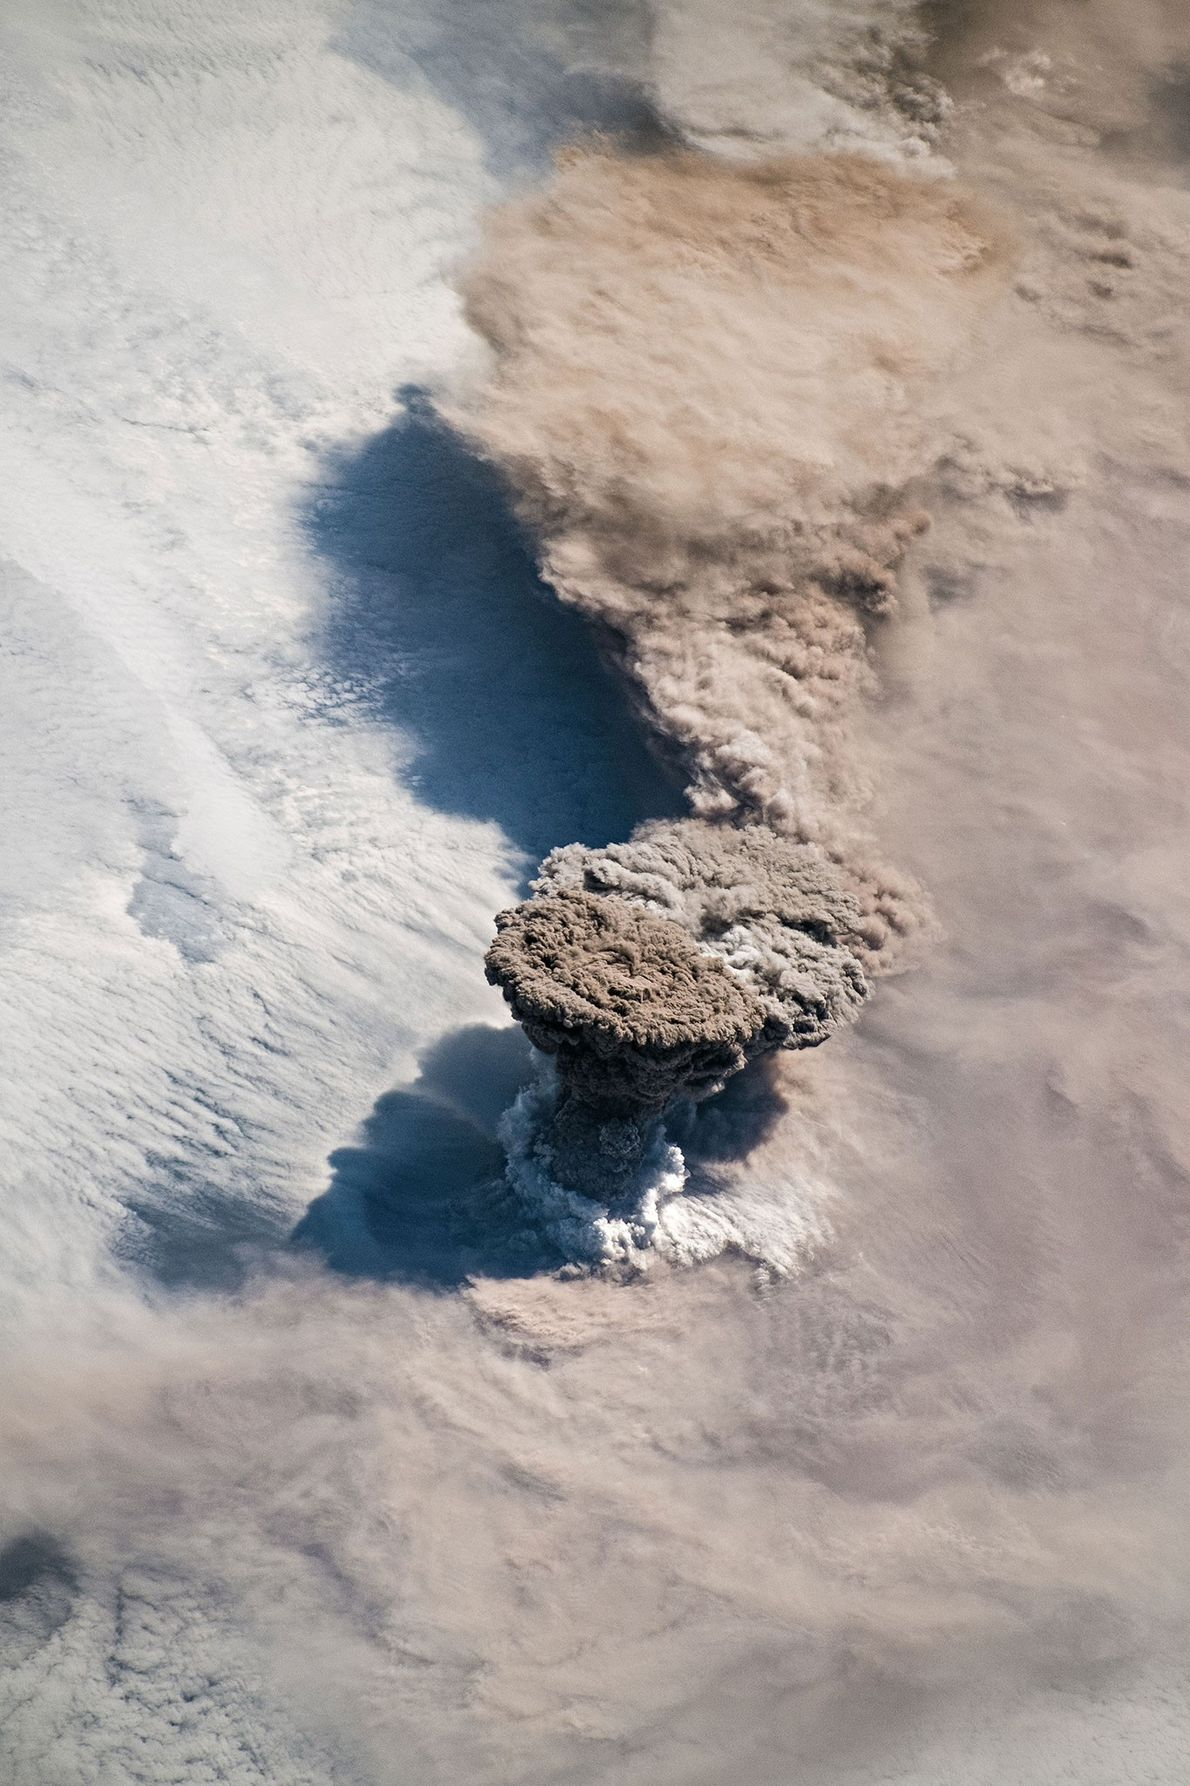 On the morning of June 22, astronauts aboard the International Space Station took this photo of ...